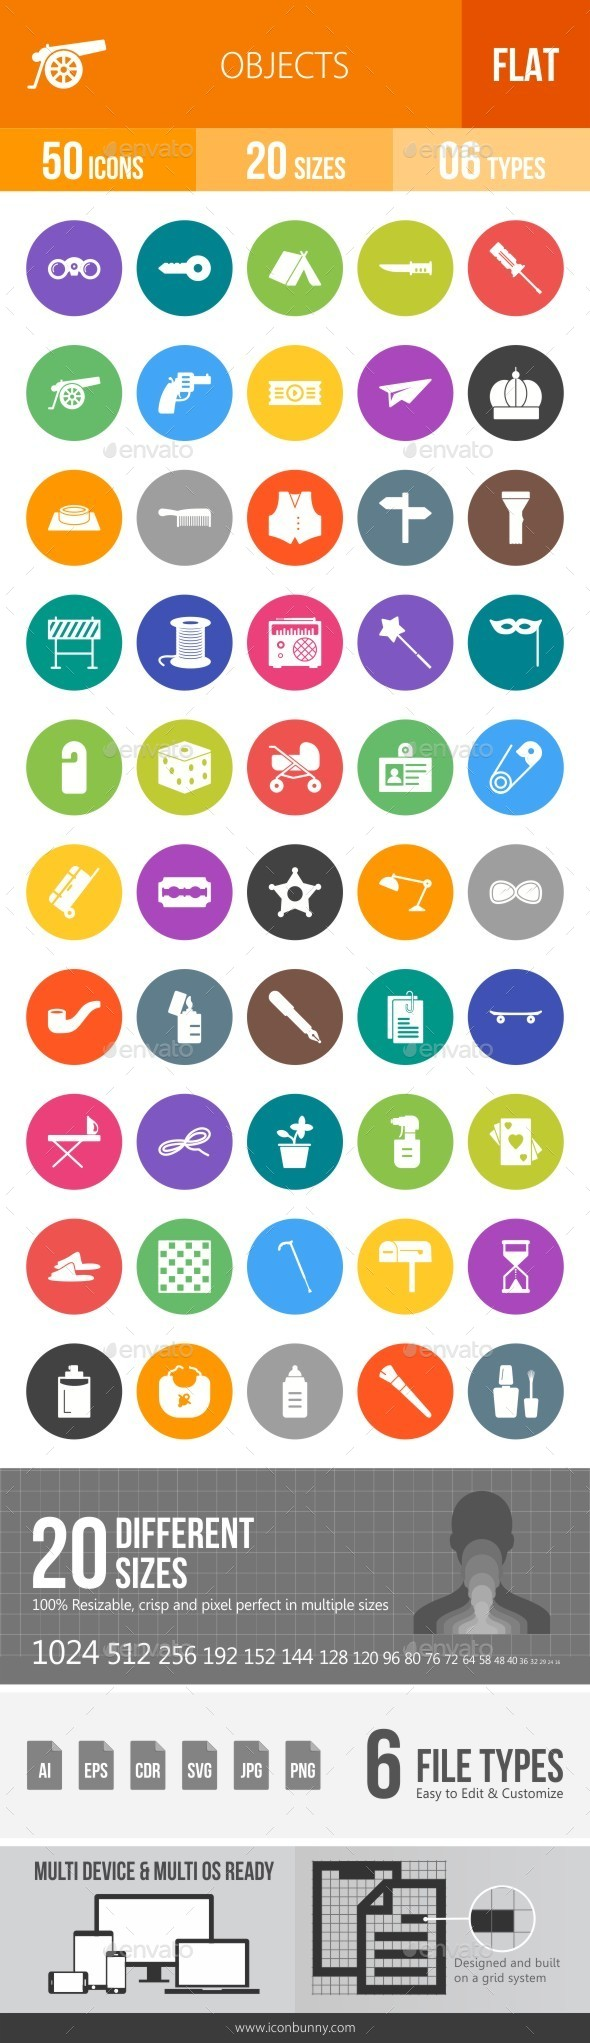 Objects Flat Round Icons - Icons